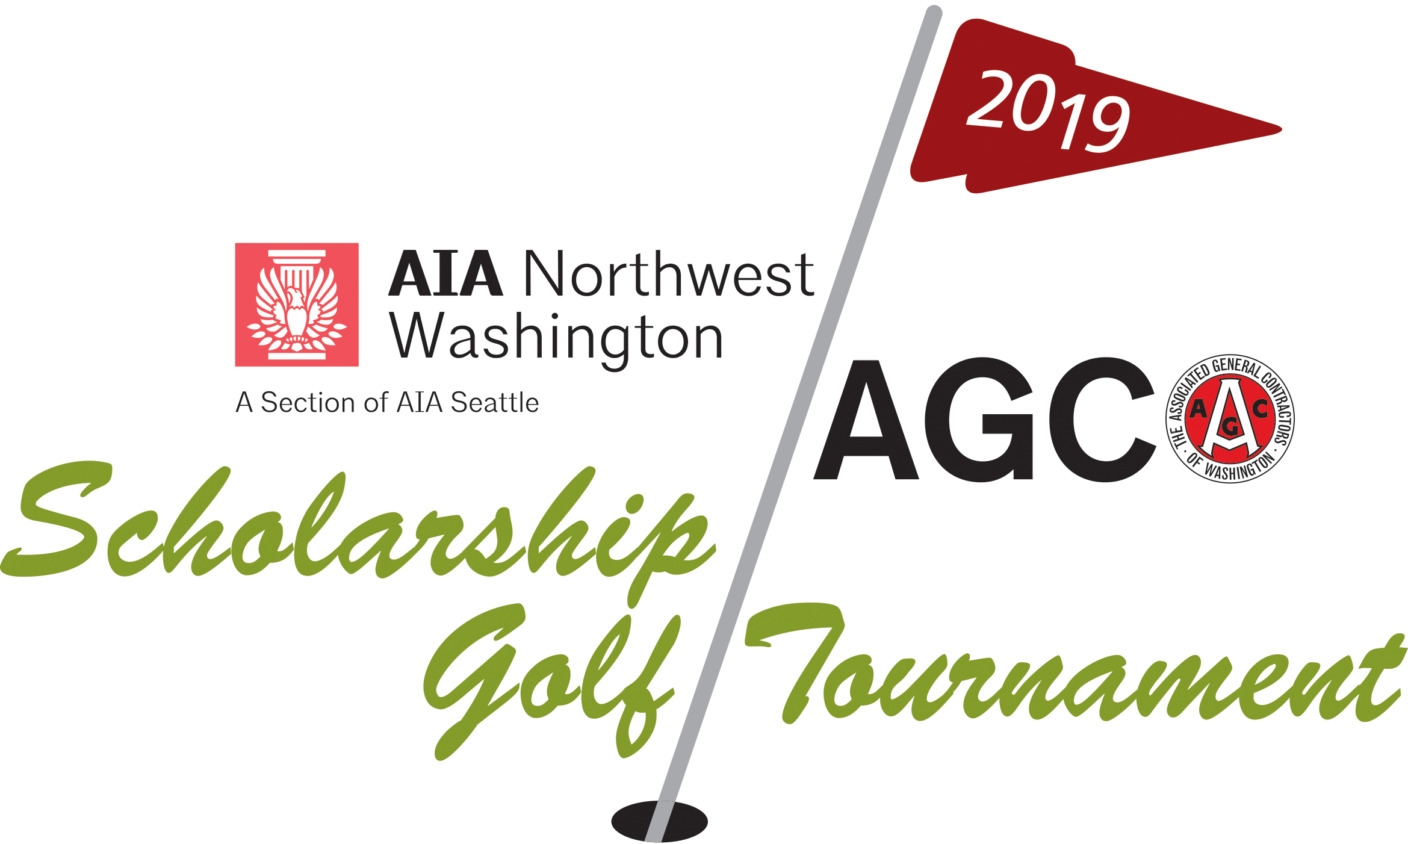 Join the Northwest Washington Chapter of the American Institute of Architects and the Associated General Contractors Northern District as we host the 2019 Scholarship Golf Tournament, presented by Freeland and Associates, Inc.